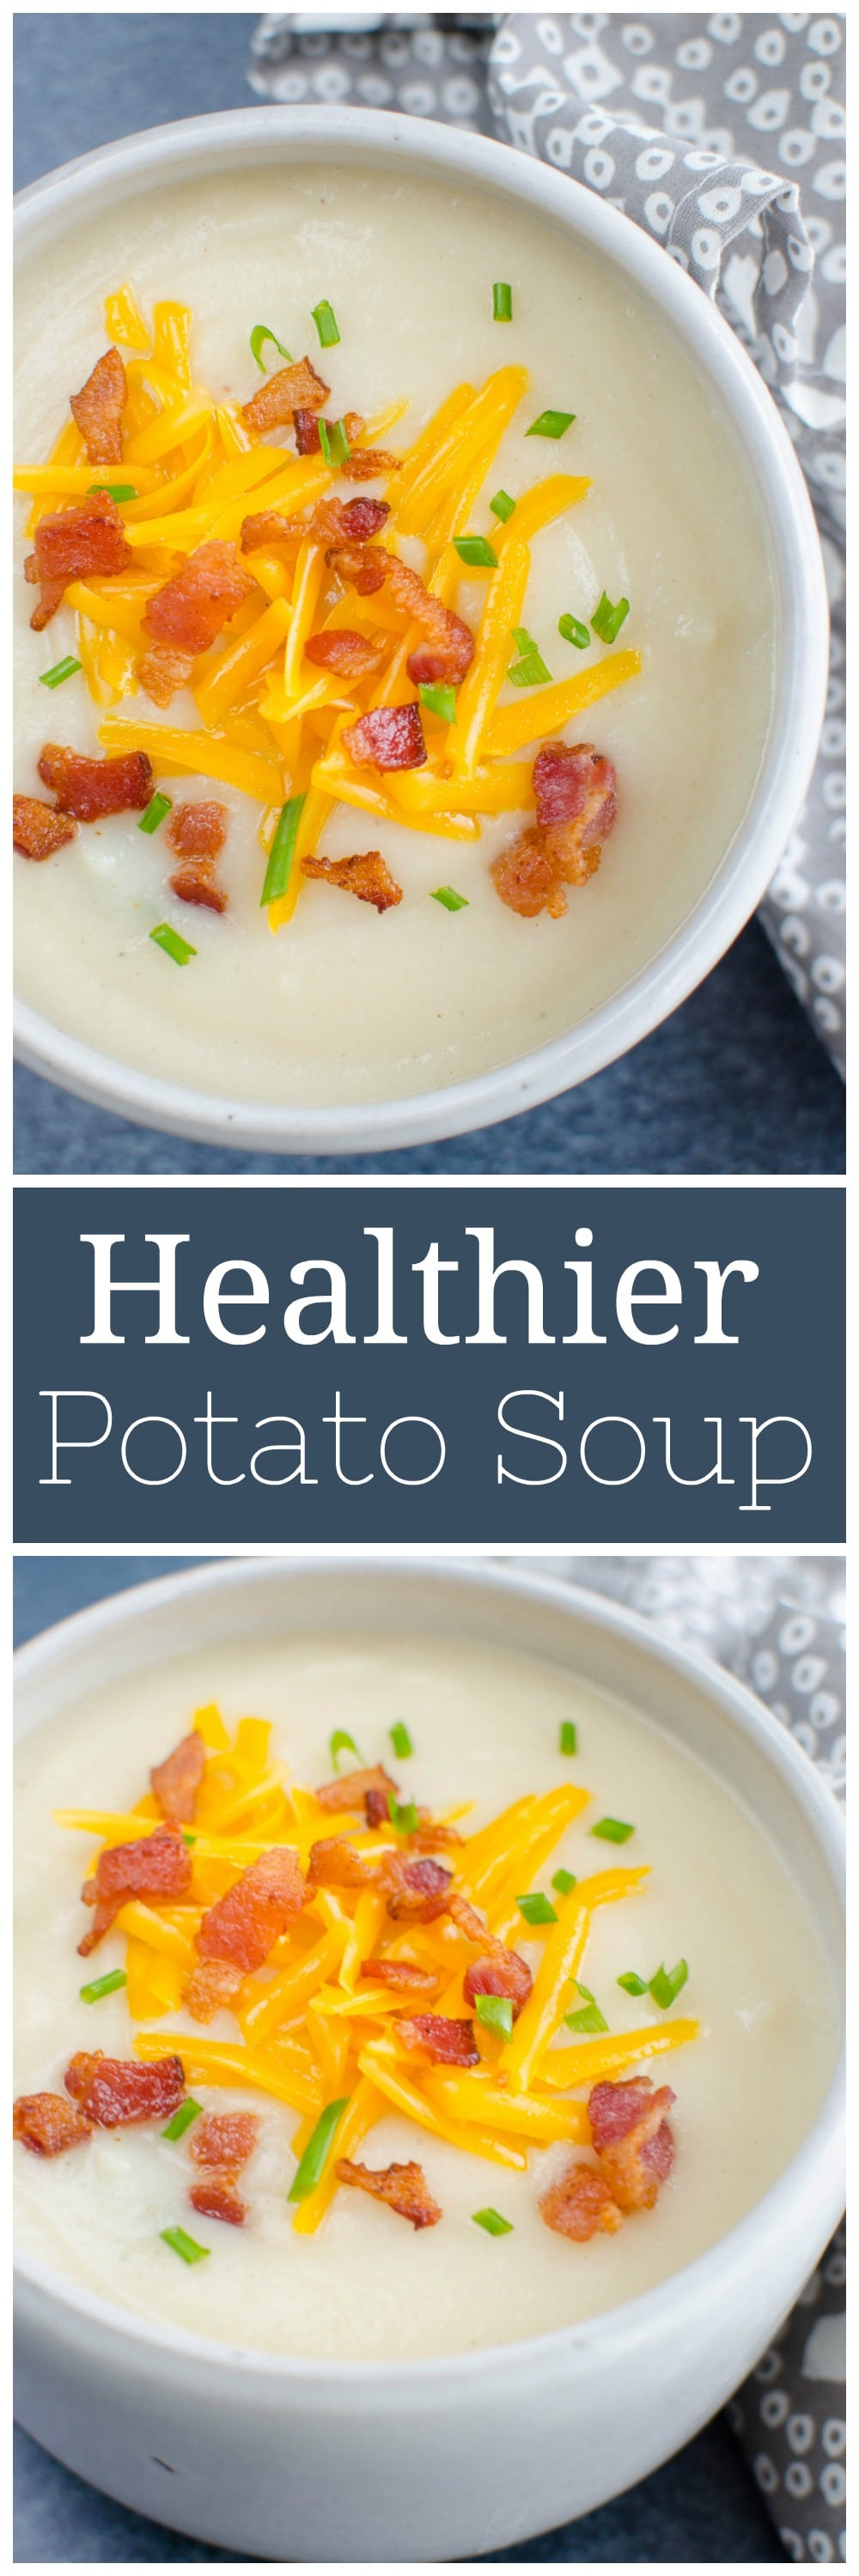 Loaded Baked Potato and Cauliflower Soup - creamy potato and cauliflower soup with bacon, cheddar cheese, and green onions. A lightened up version of baked potato soup!